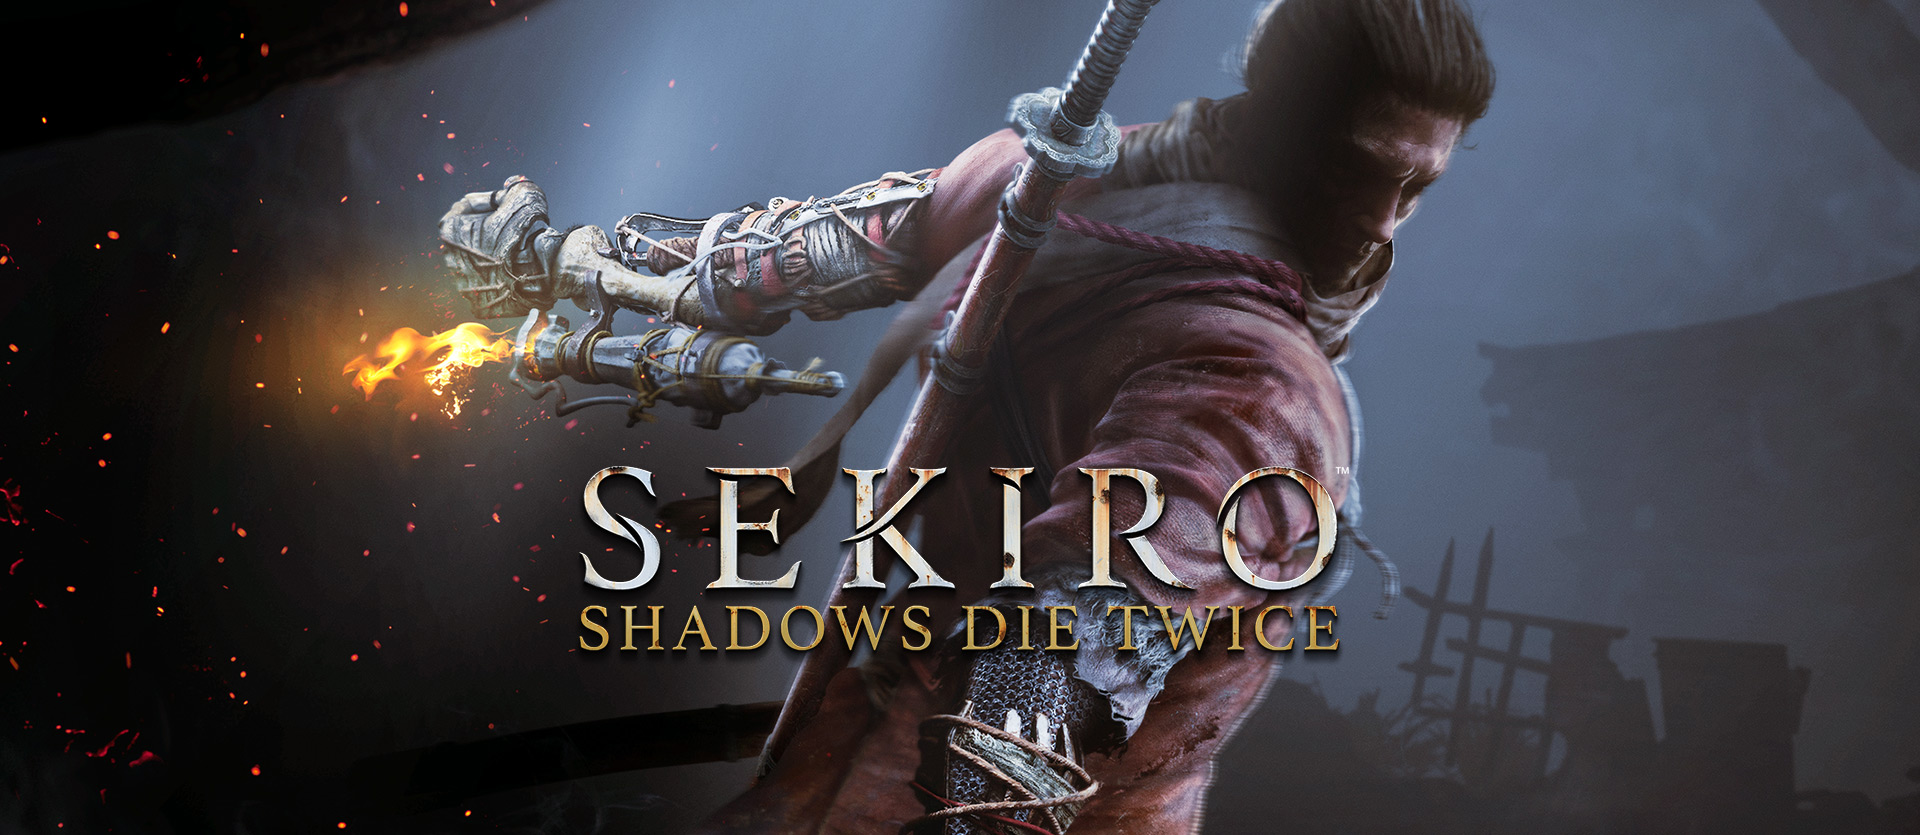 Sekiro: Shadows Die Twice: a Samurai wields a flamethrower from his makeshift arm